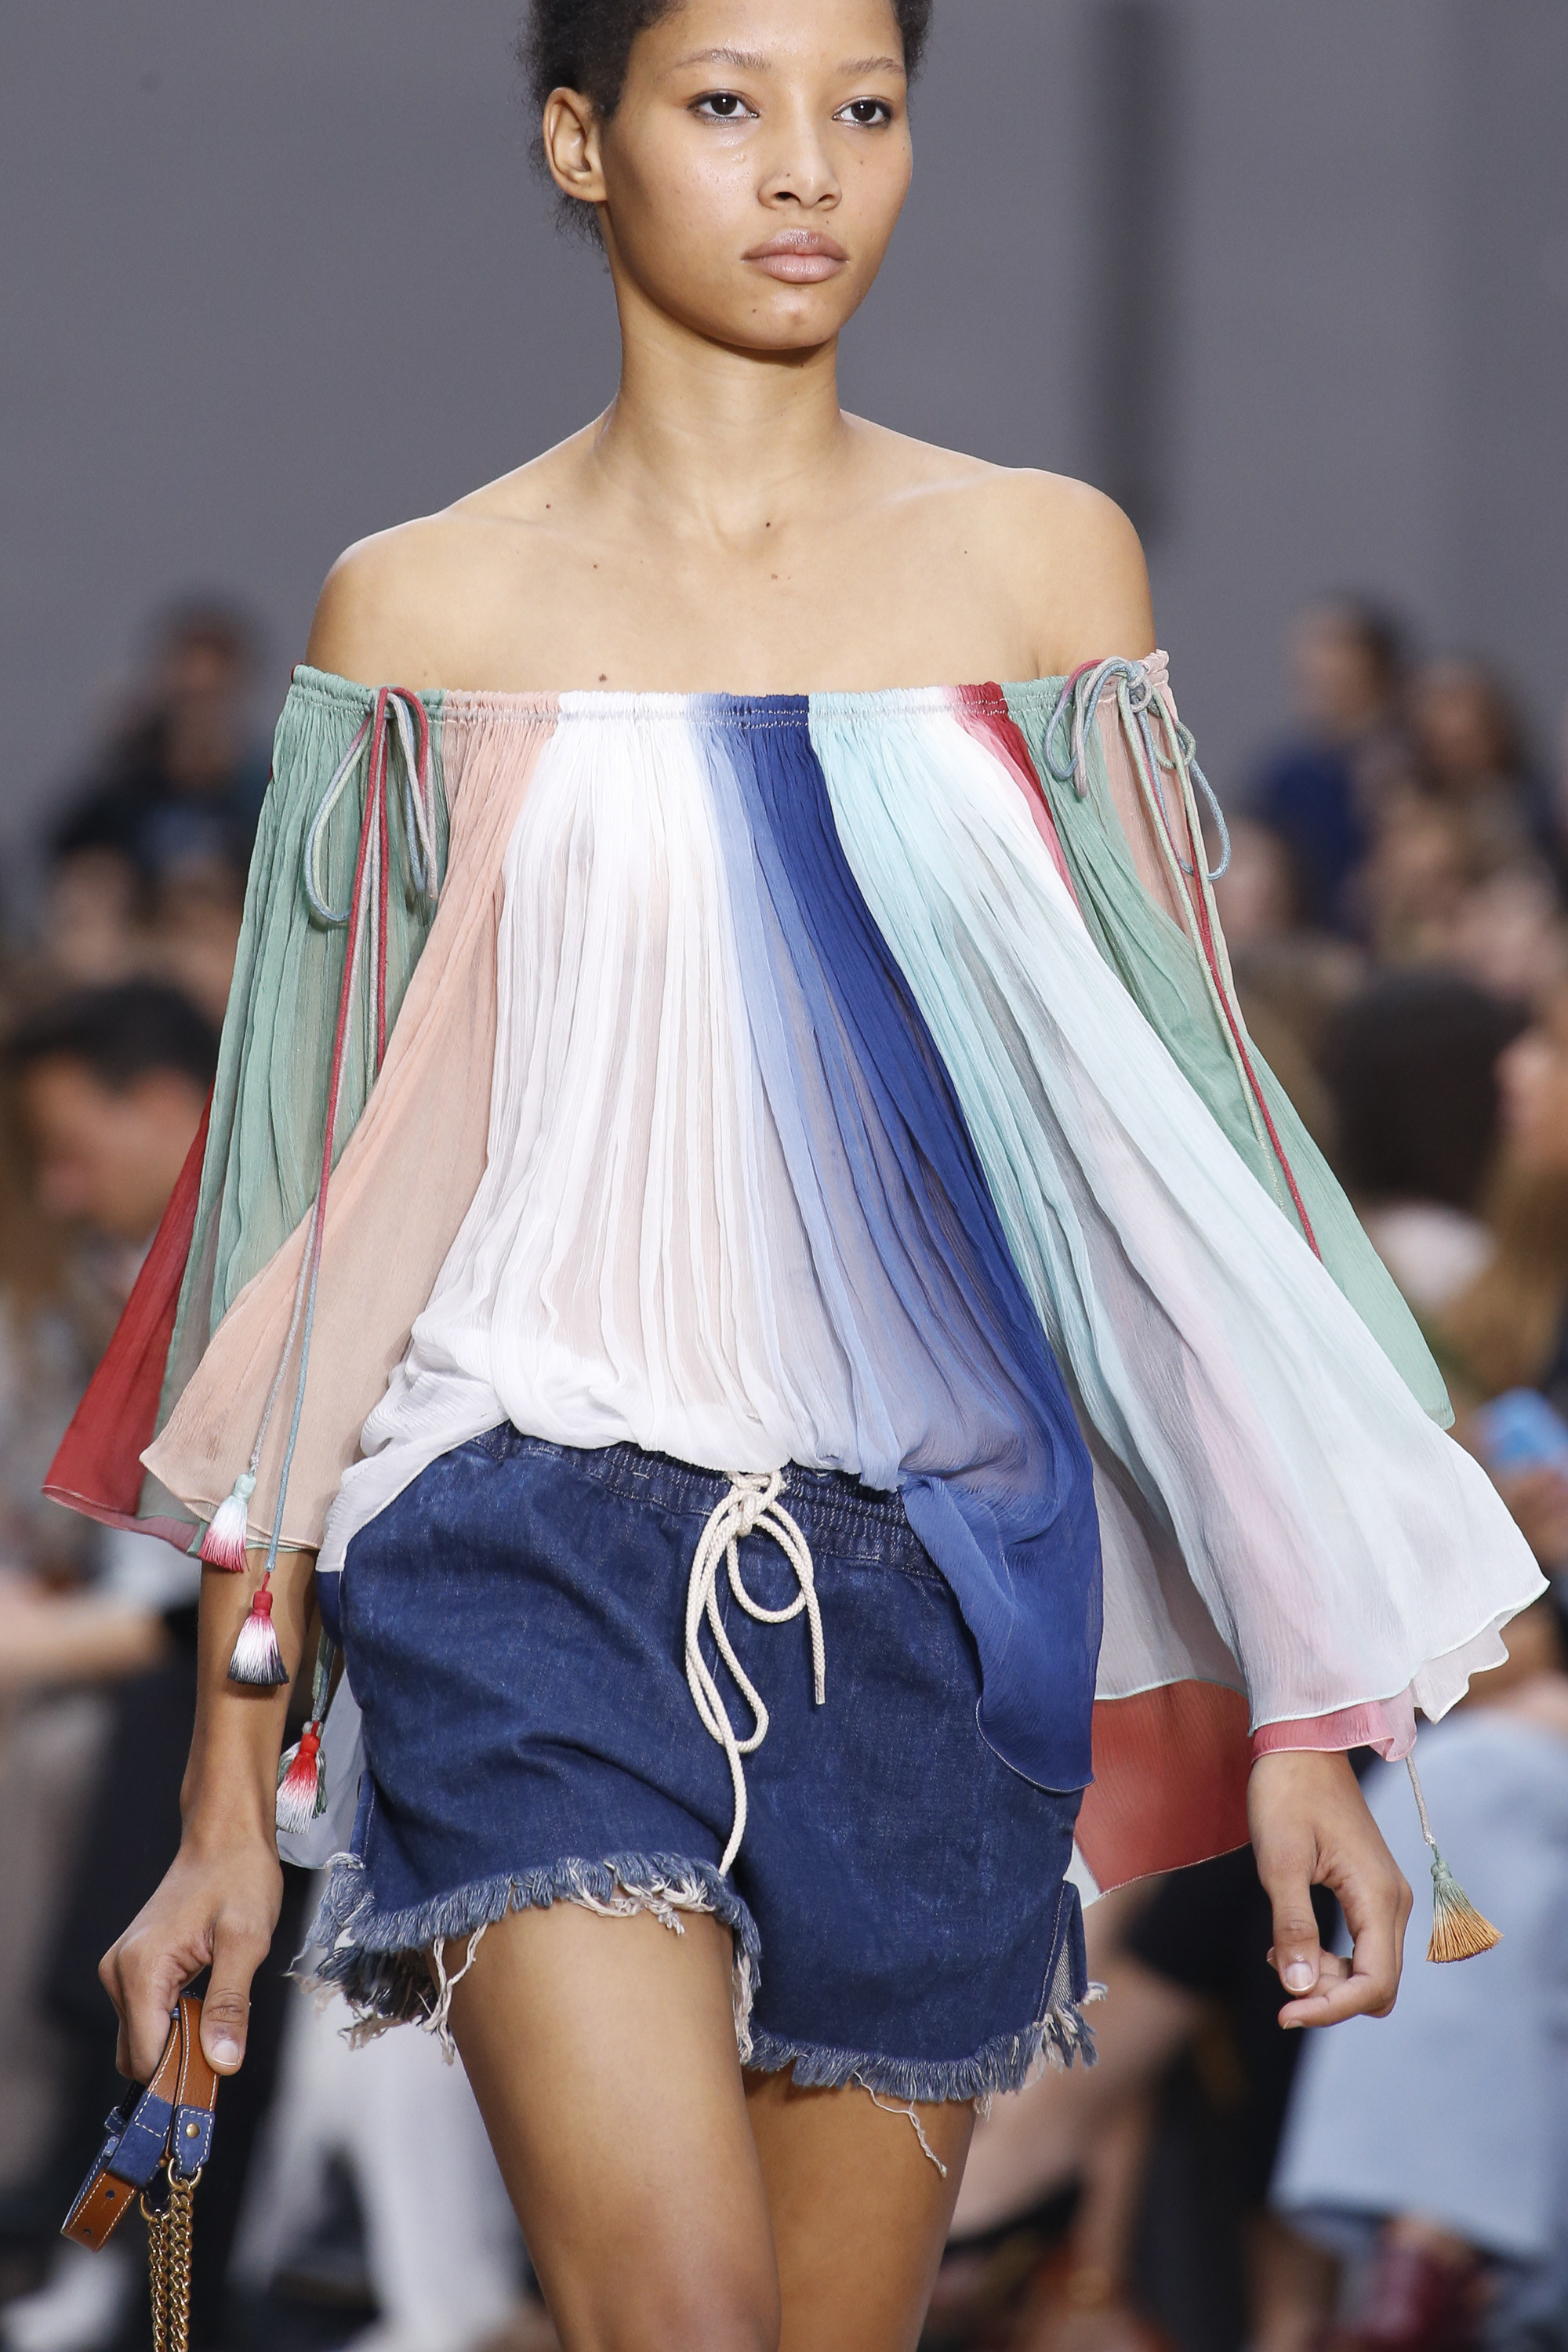 85d203e8f Source:http://www.vogue.com/fashion-shows/spring-2016-ready-to-wear/chloe /slideshow/collection#21